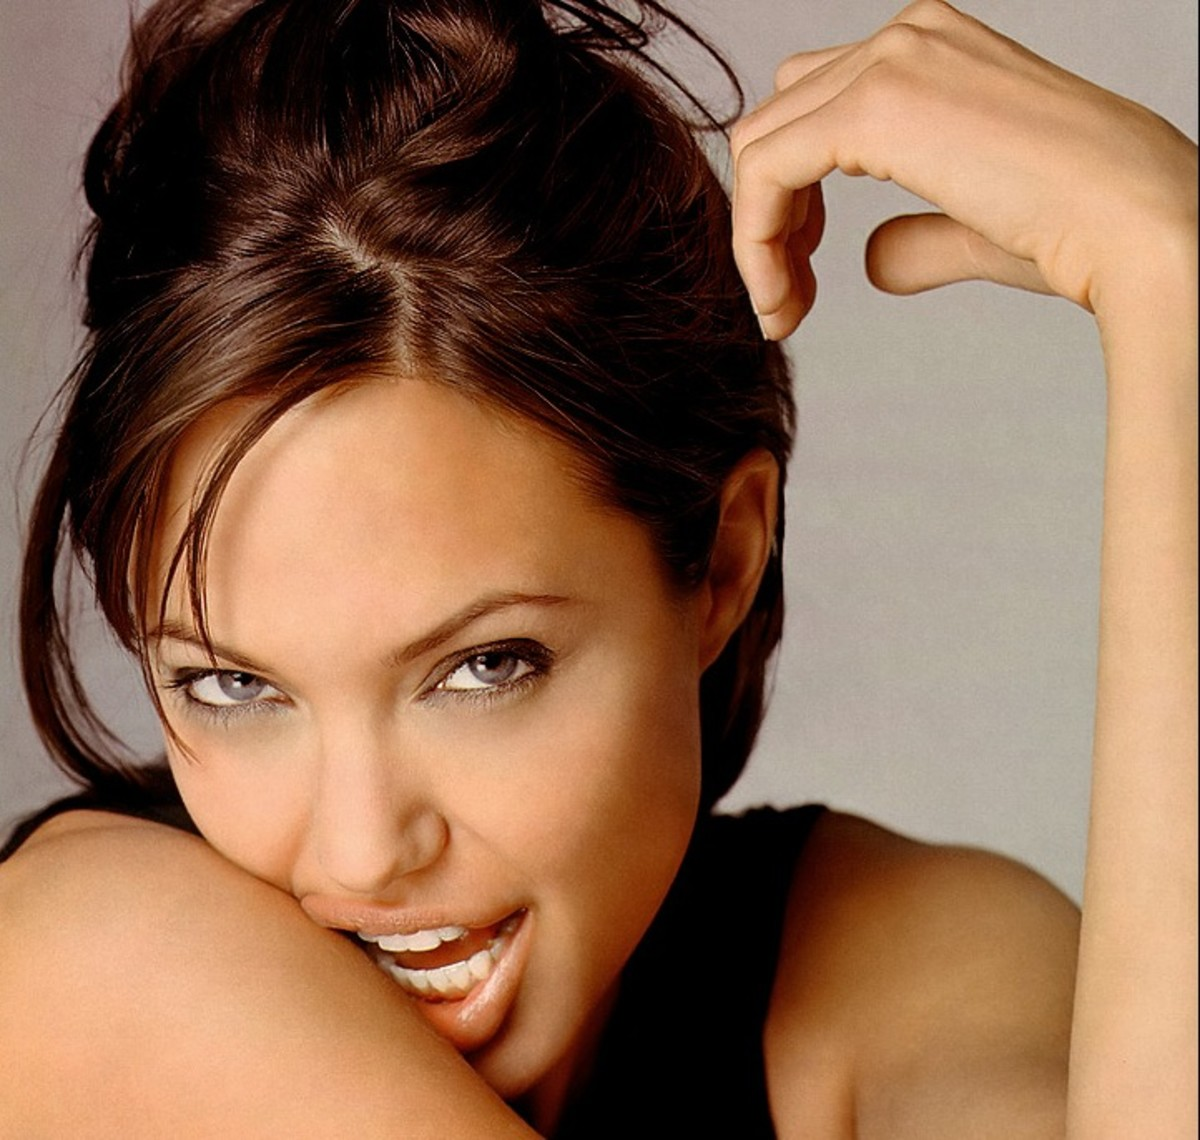 How Hot is Angelina Jolie?